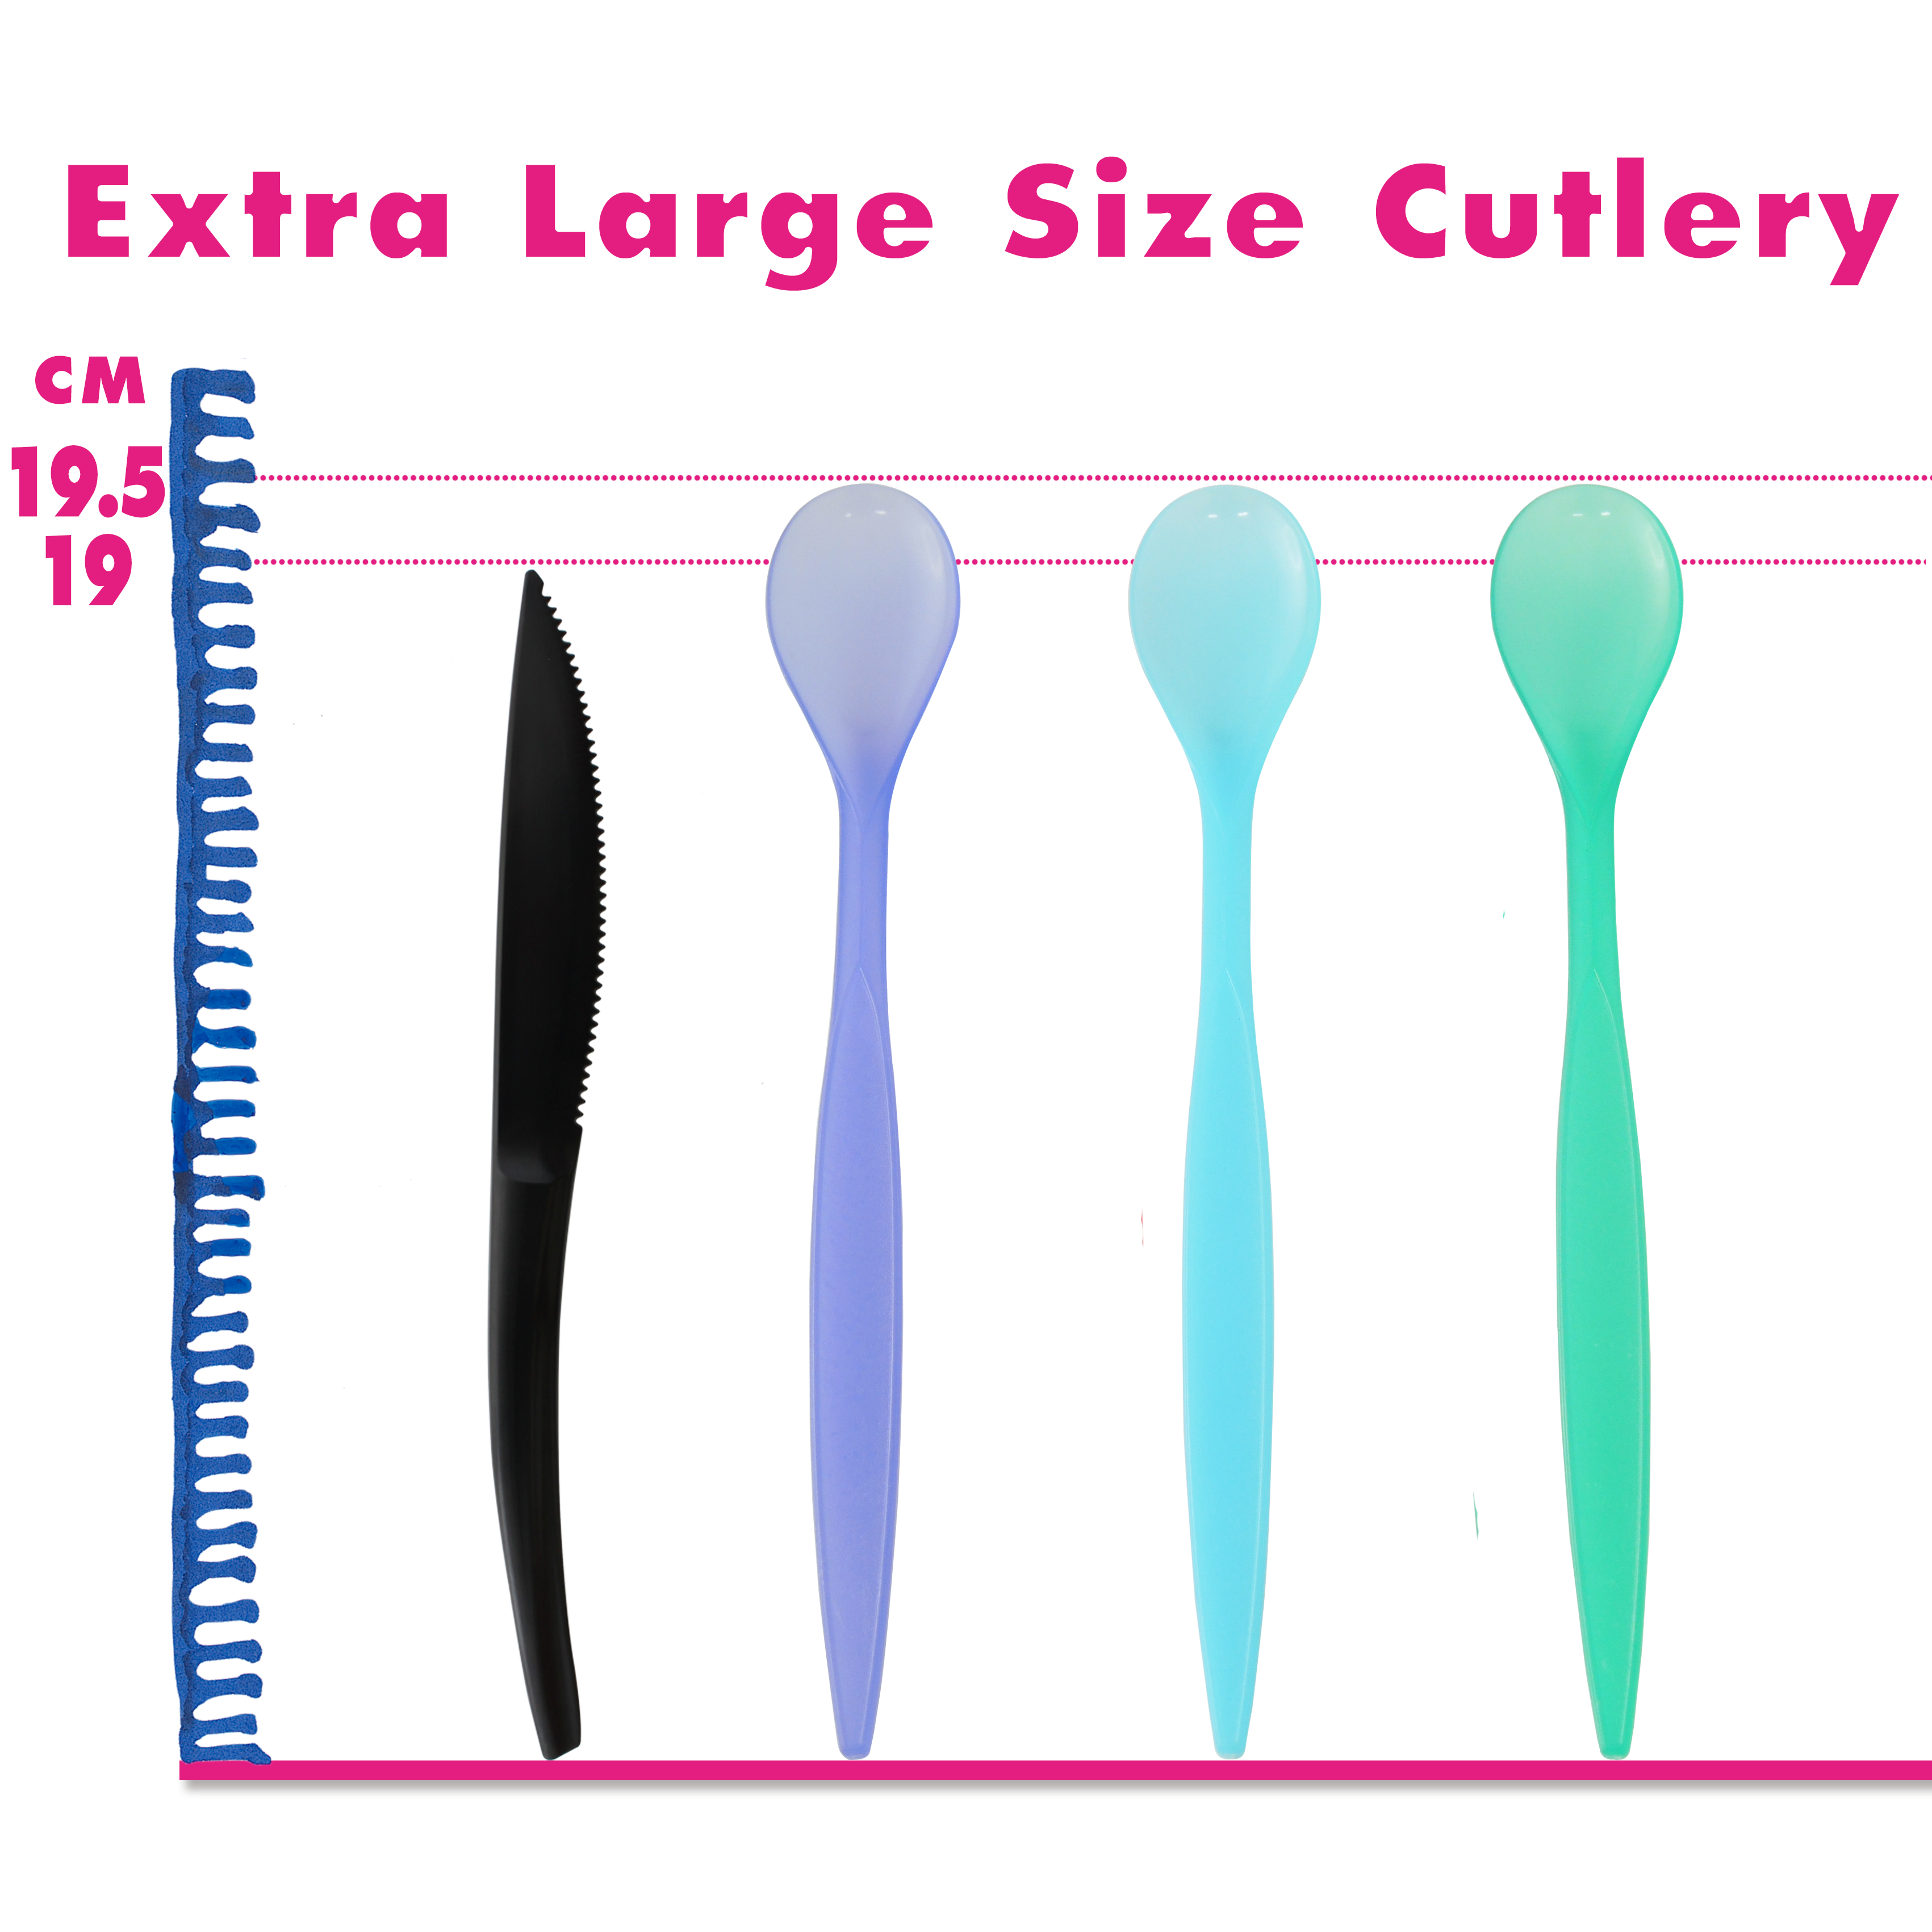 18.5-22cm Extra Large Plastic Cutlery